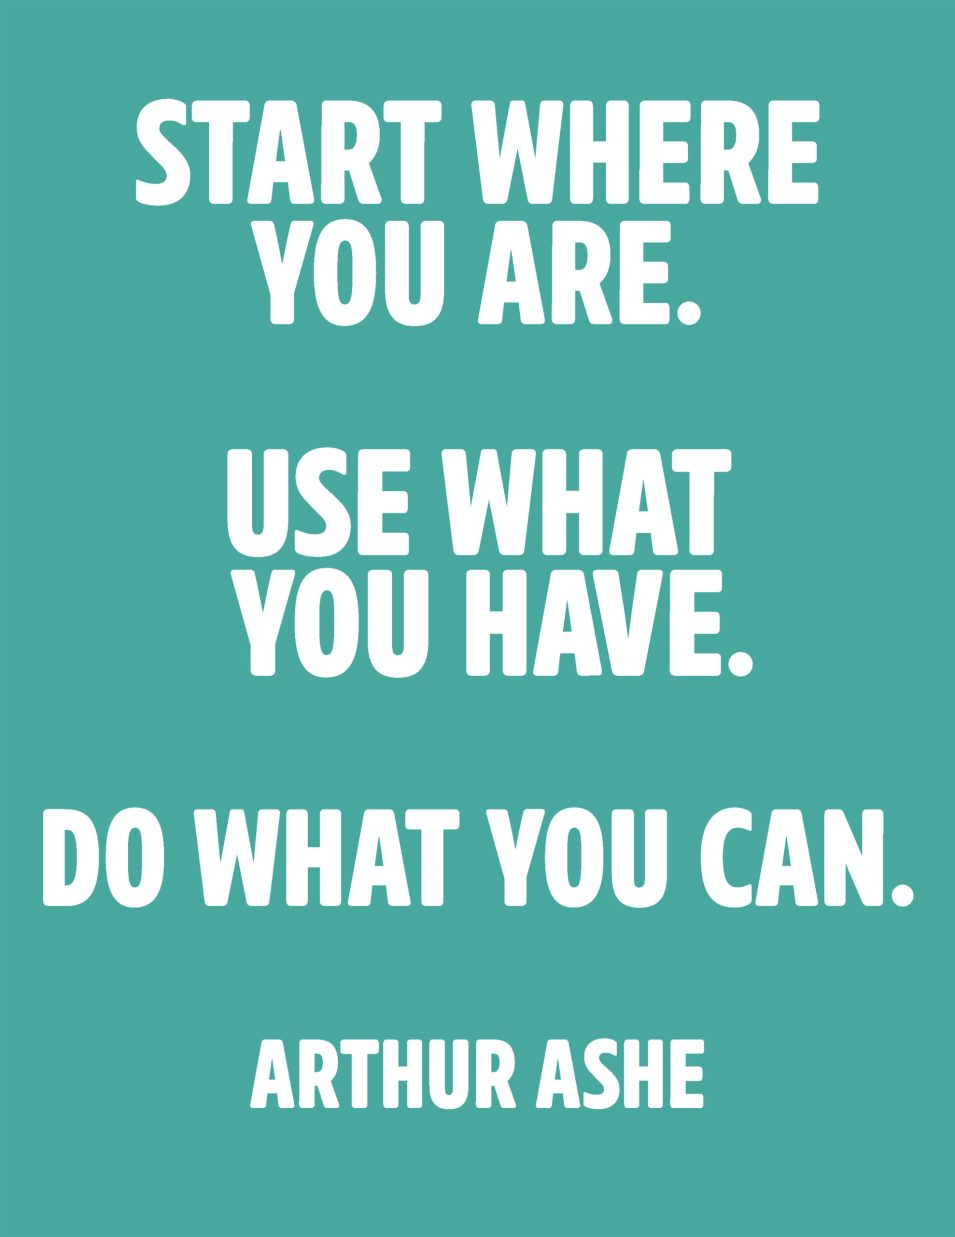 365 - Start Where You Are